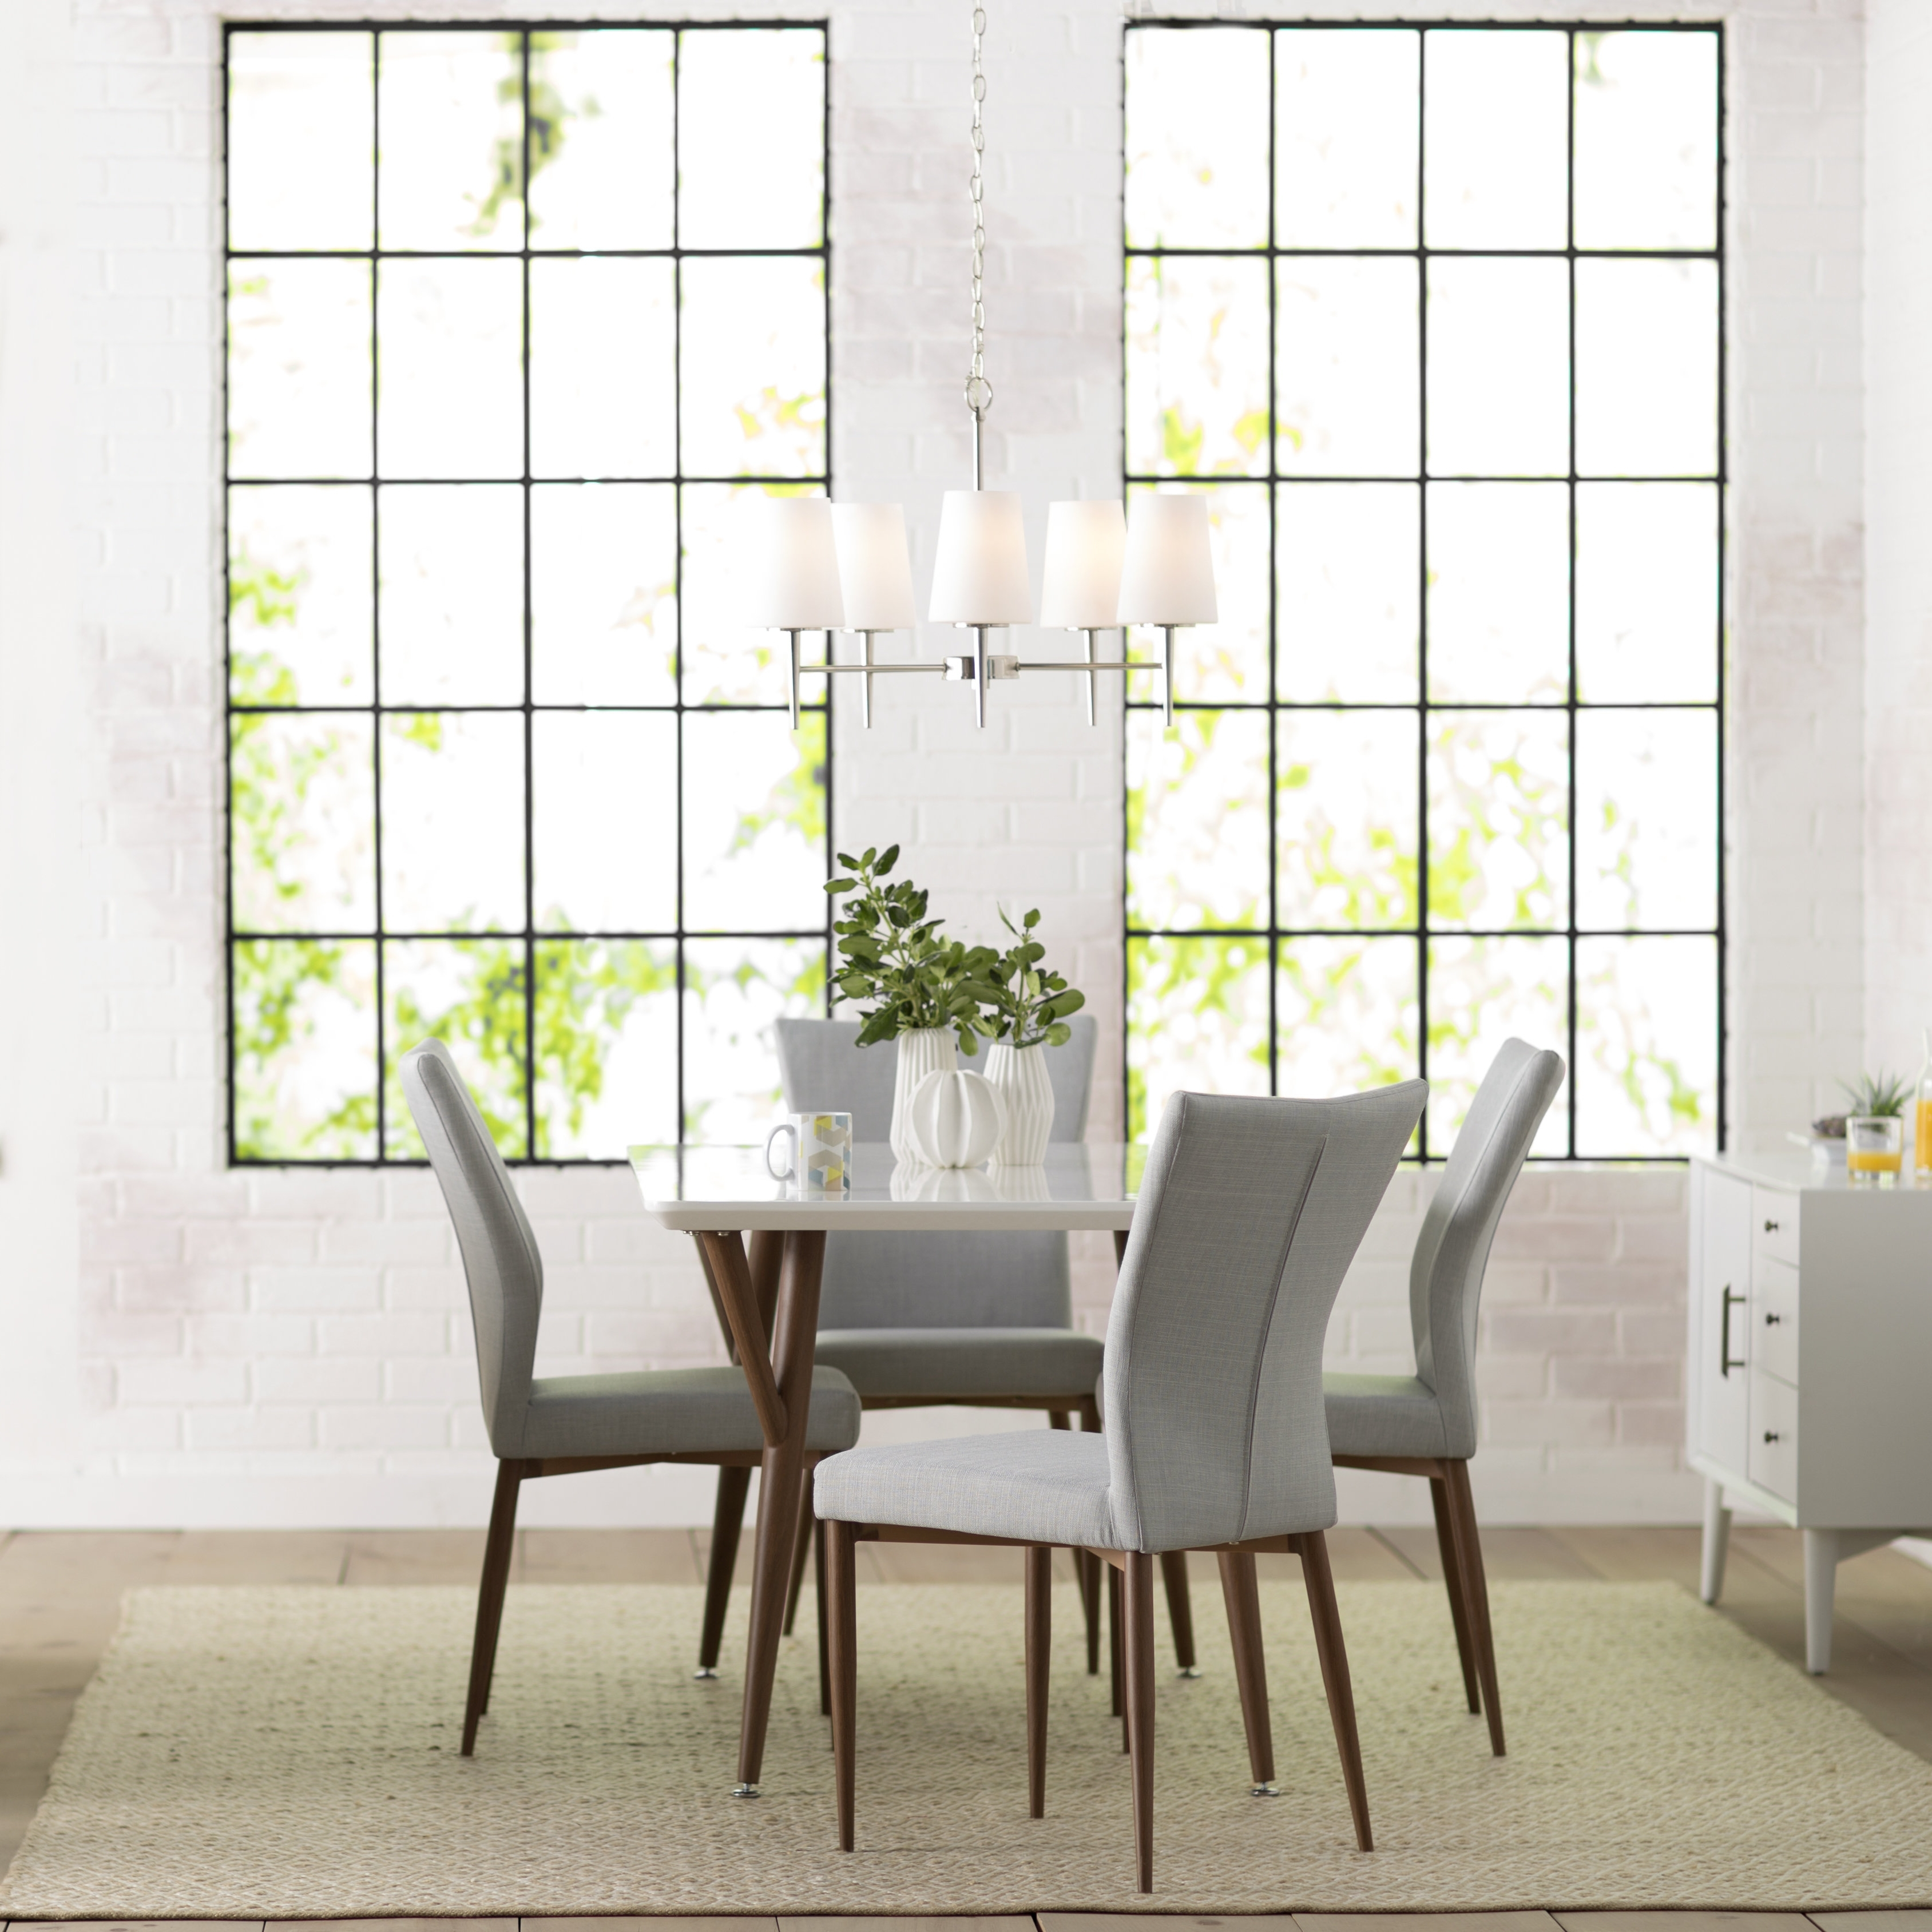 Wayfair Intended For Latest Rio Dining Tables (View 18 of 25)